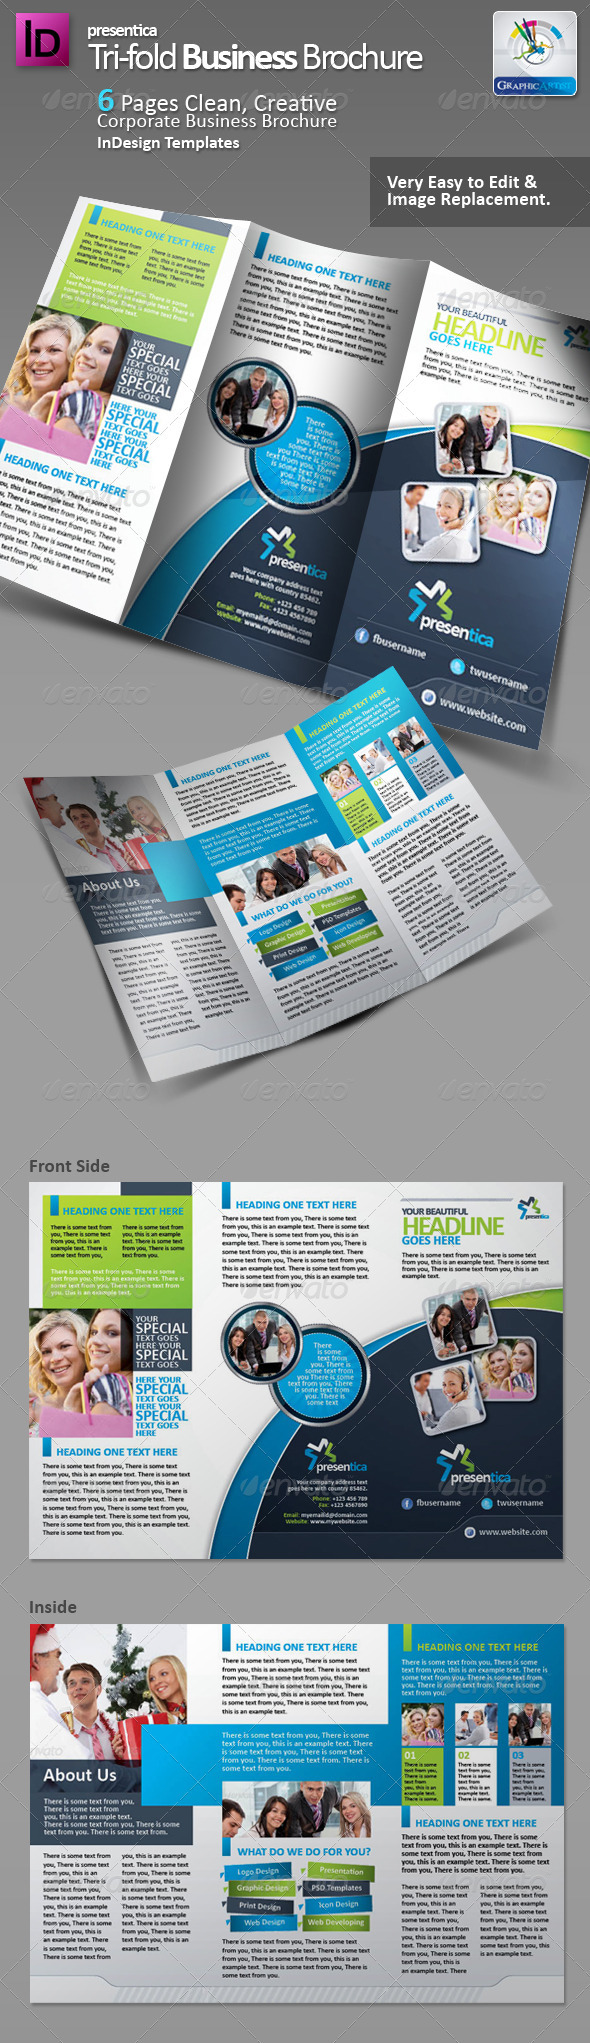 Corporate%20Business%20Tri fold%20Brochure Image Preview image